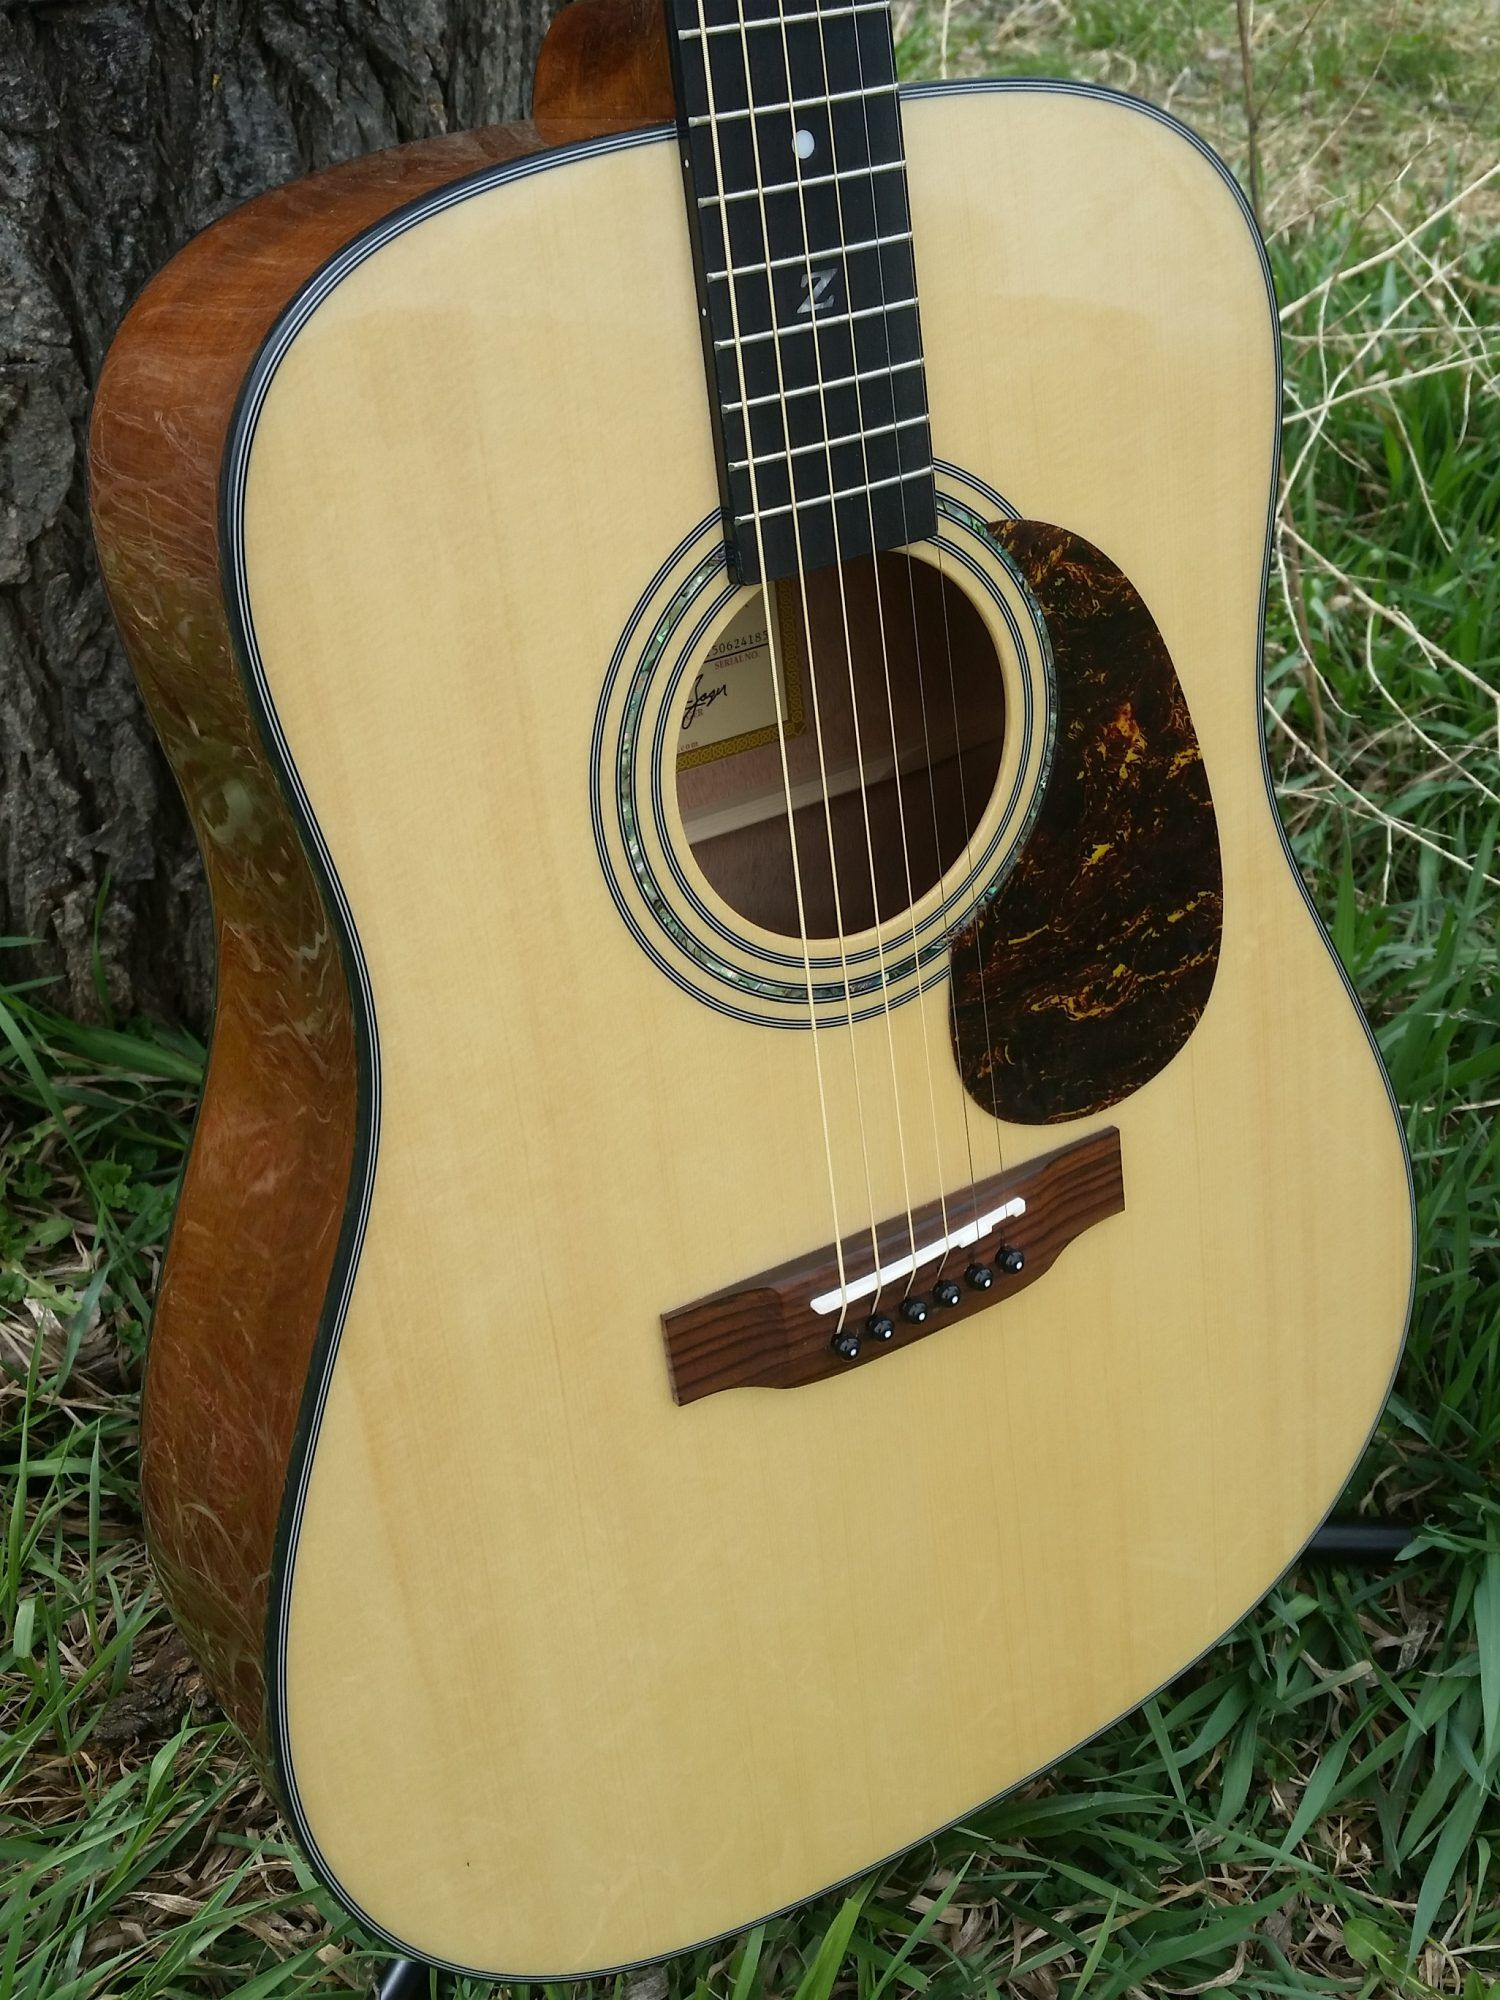 Win this Zager Acoustic Electric Guitar and Lifetime Guitar Lessons guitargiveaway